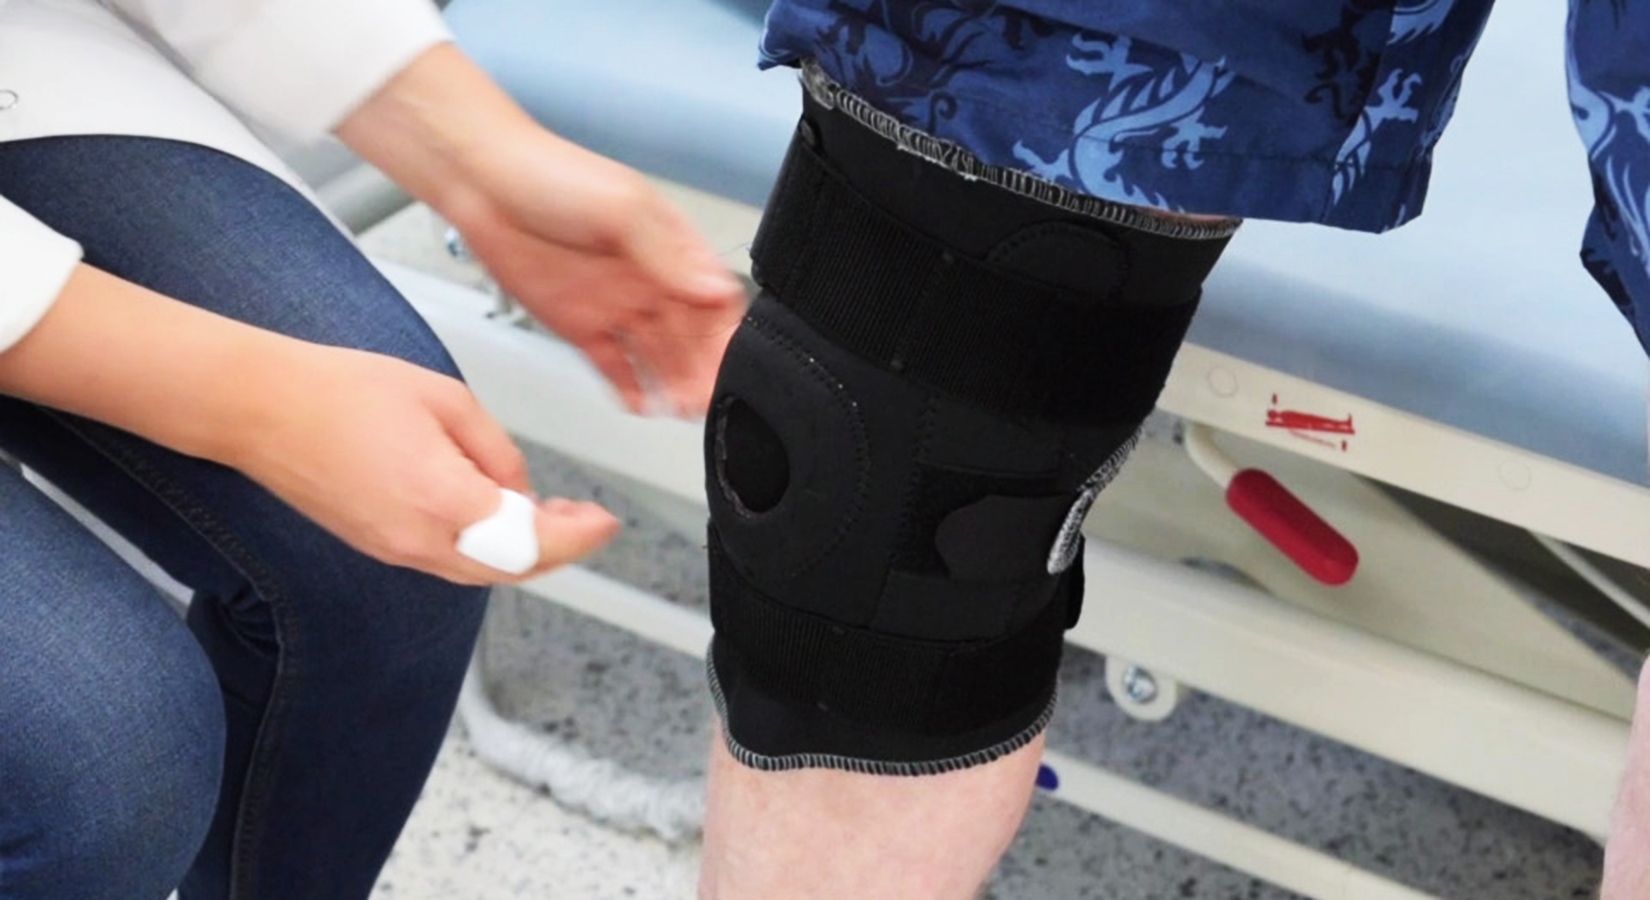 Portable Medical Device for monitoring knee conditions through acoustic, kinetic and thermaldata